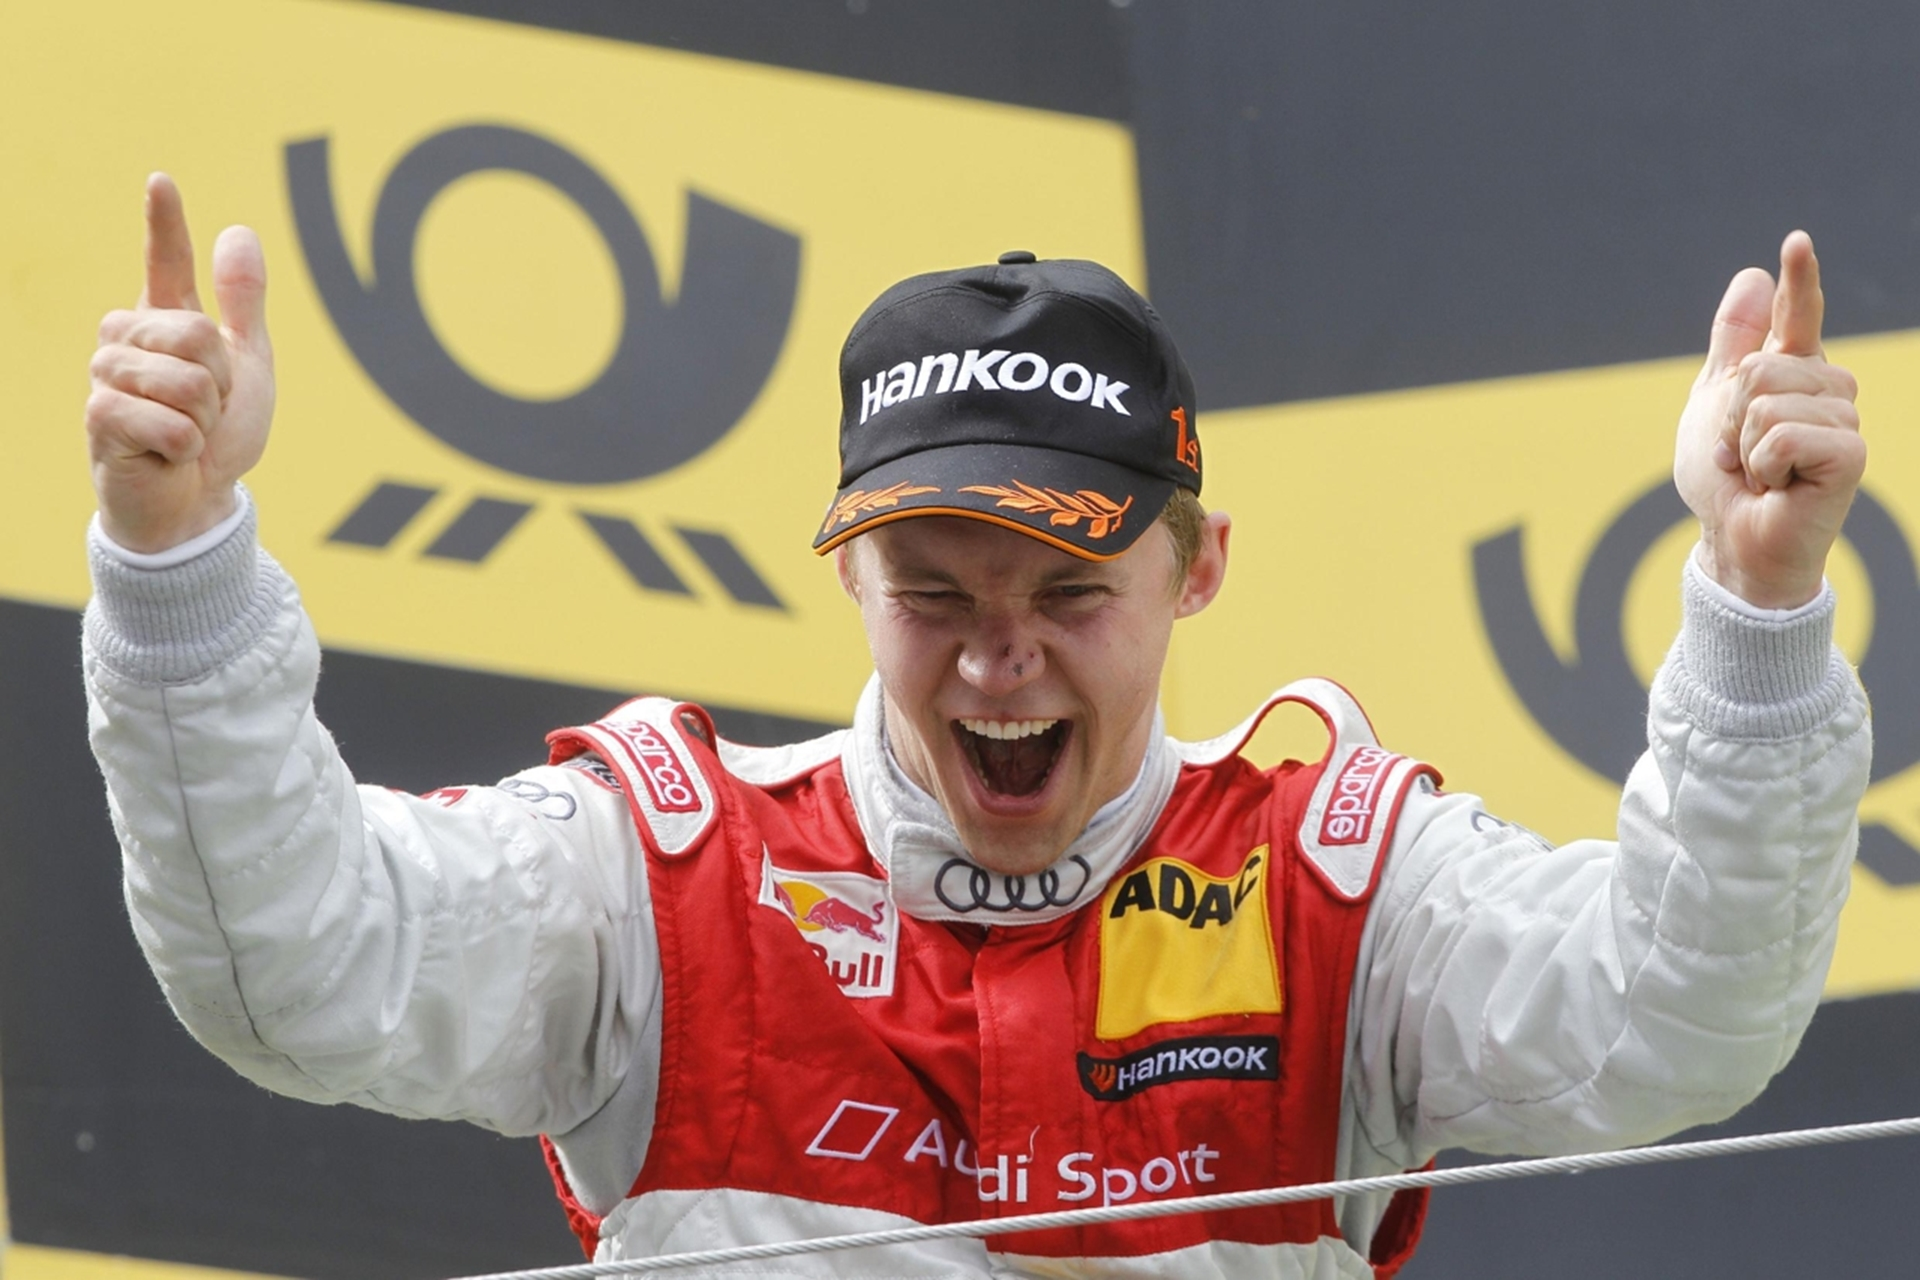 Mattias Ekstrom at his 2011 Nurburgring victory